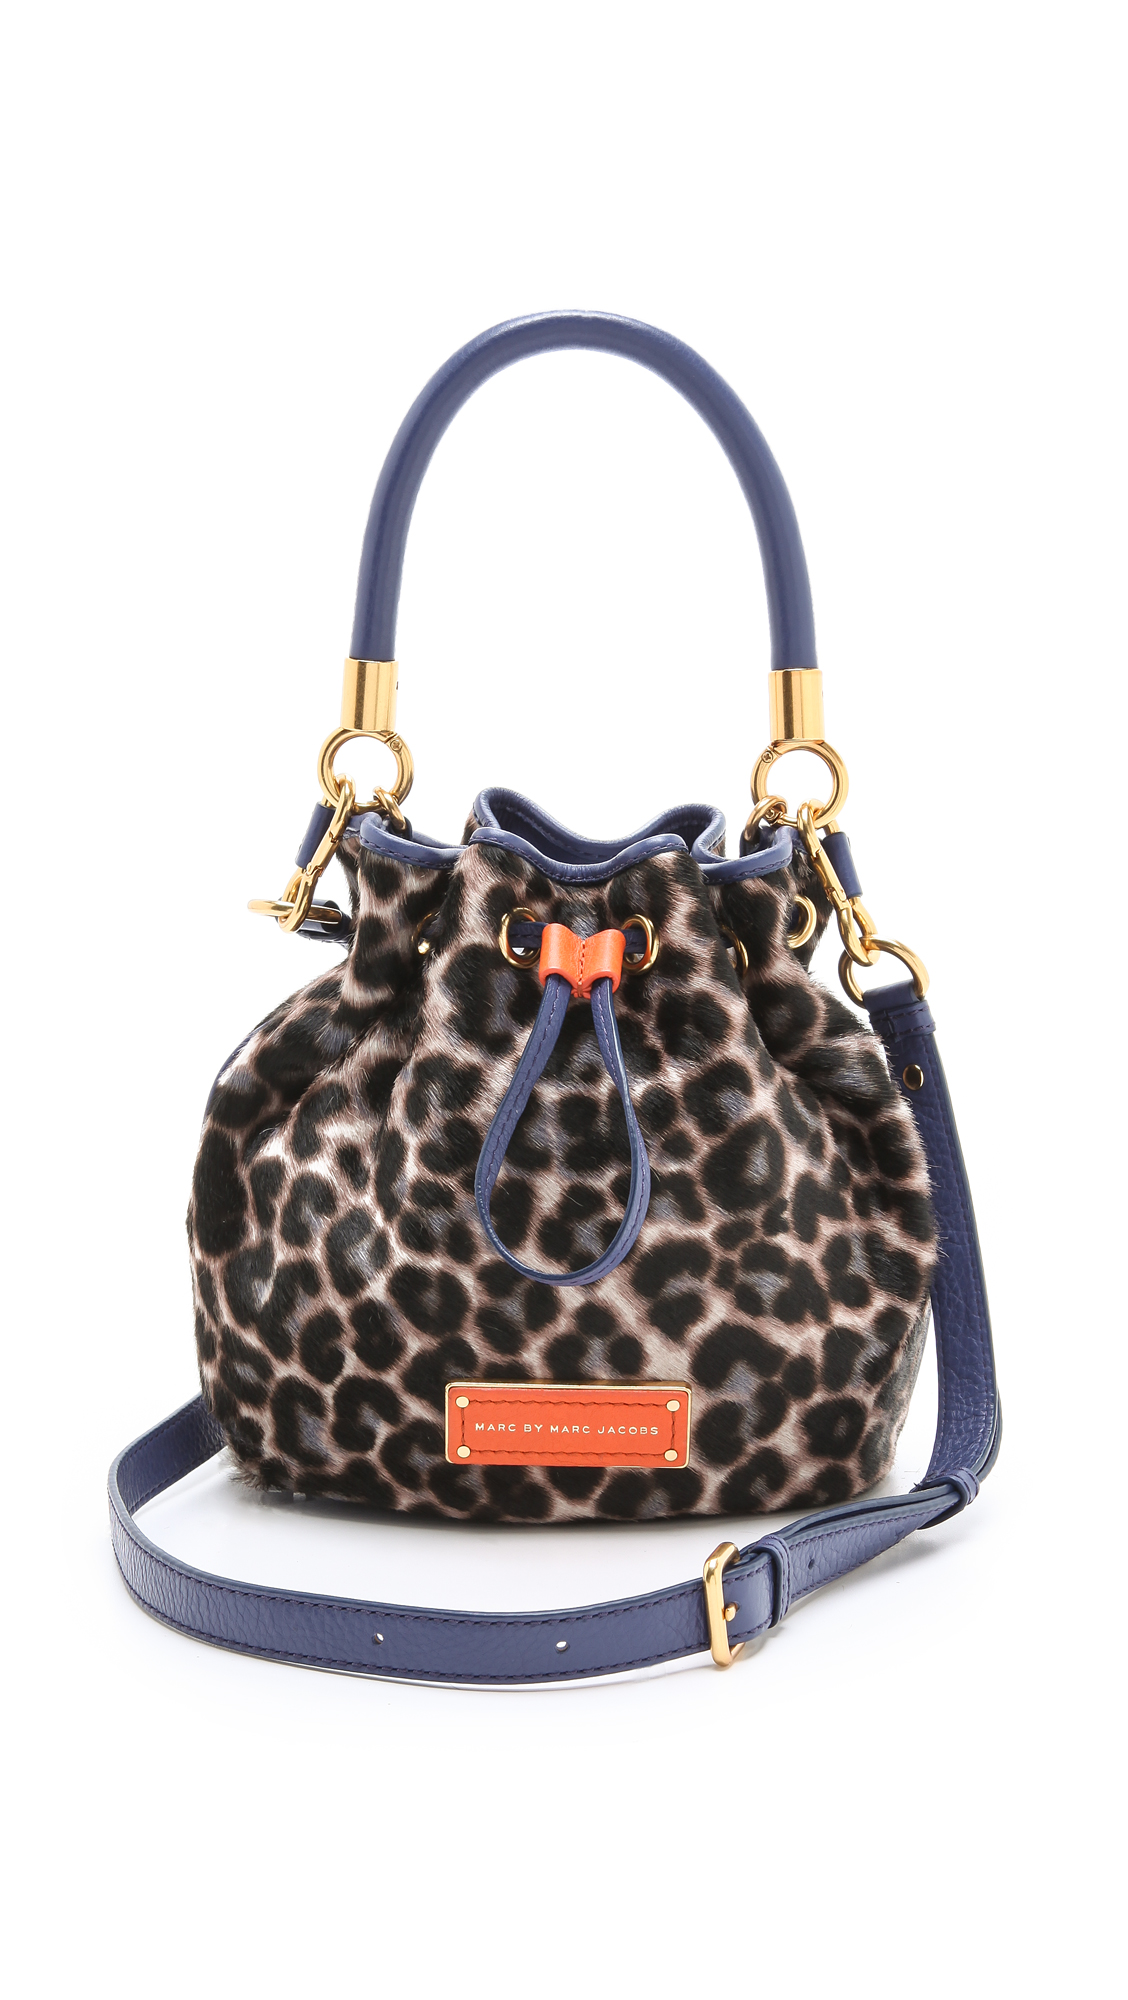 b64d89b3832f Gallery. Previously sold at  Shopbop · Women s Marc Jacobs Too Hot To Handle